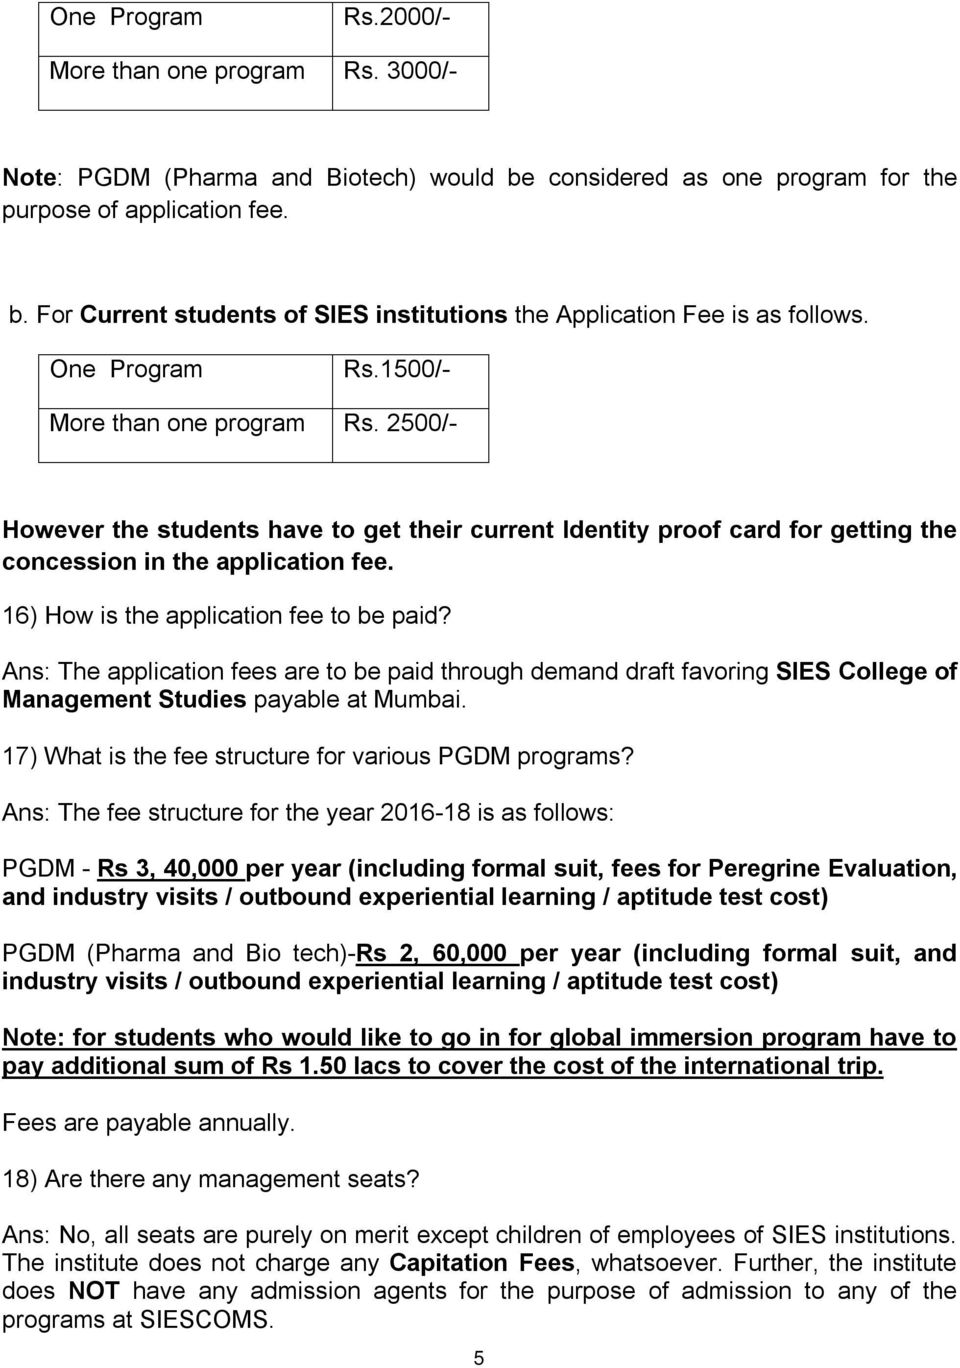 16) How is the application fee to be paid? Ans: The application fees are to be paid through demand draft favoring SIES College of Management Studies payable at Mumbai.